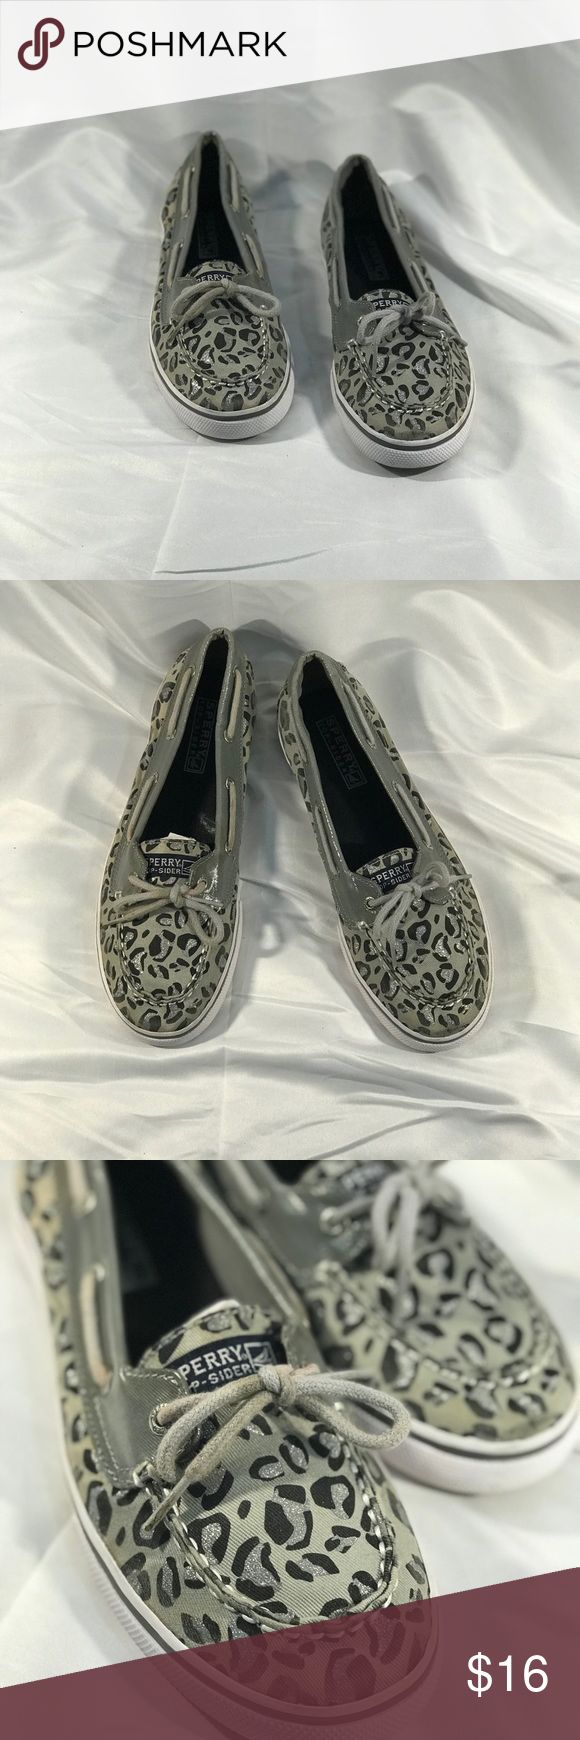 💕CUTE SILVER LEOPARD SPERRY BOAT SHOES▪️Sz 6▪️ Details..... Brand:  Sperry Top Sider  Size: 6   Measurements: FLAT  Material: Canvas  Color: SILVER    Fine Print: -Questions? If you have any questions please feel free to send me a message. Storage Conditions: Pet-free & Smoke-free. -Shipping&Handling: All items will be shipped within 1 Business Day (same day for most orders).   Thank You For Shopping 523EXCHANGE! Sperry Top-Sider Shoes Flats & Loafers